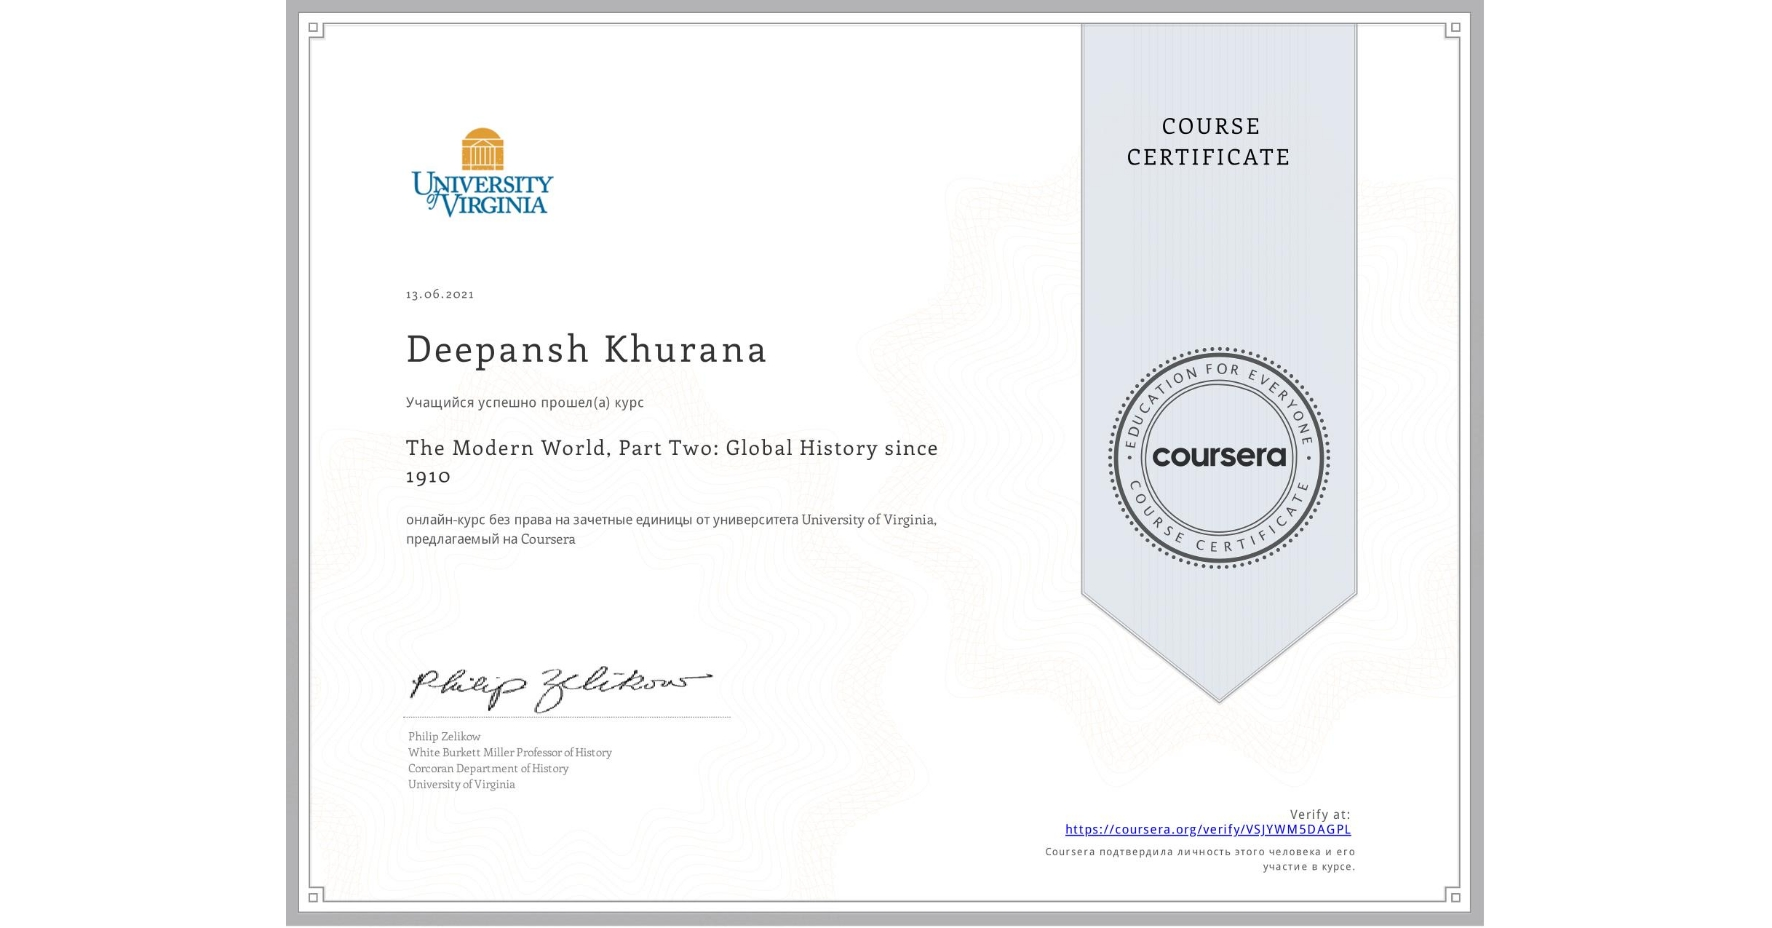 View certificate for Deepansh Khurana, The Modern World, Part Two: Global History since 1910, an online non-credit course authorized by University of Virginia and offered through Coursera